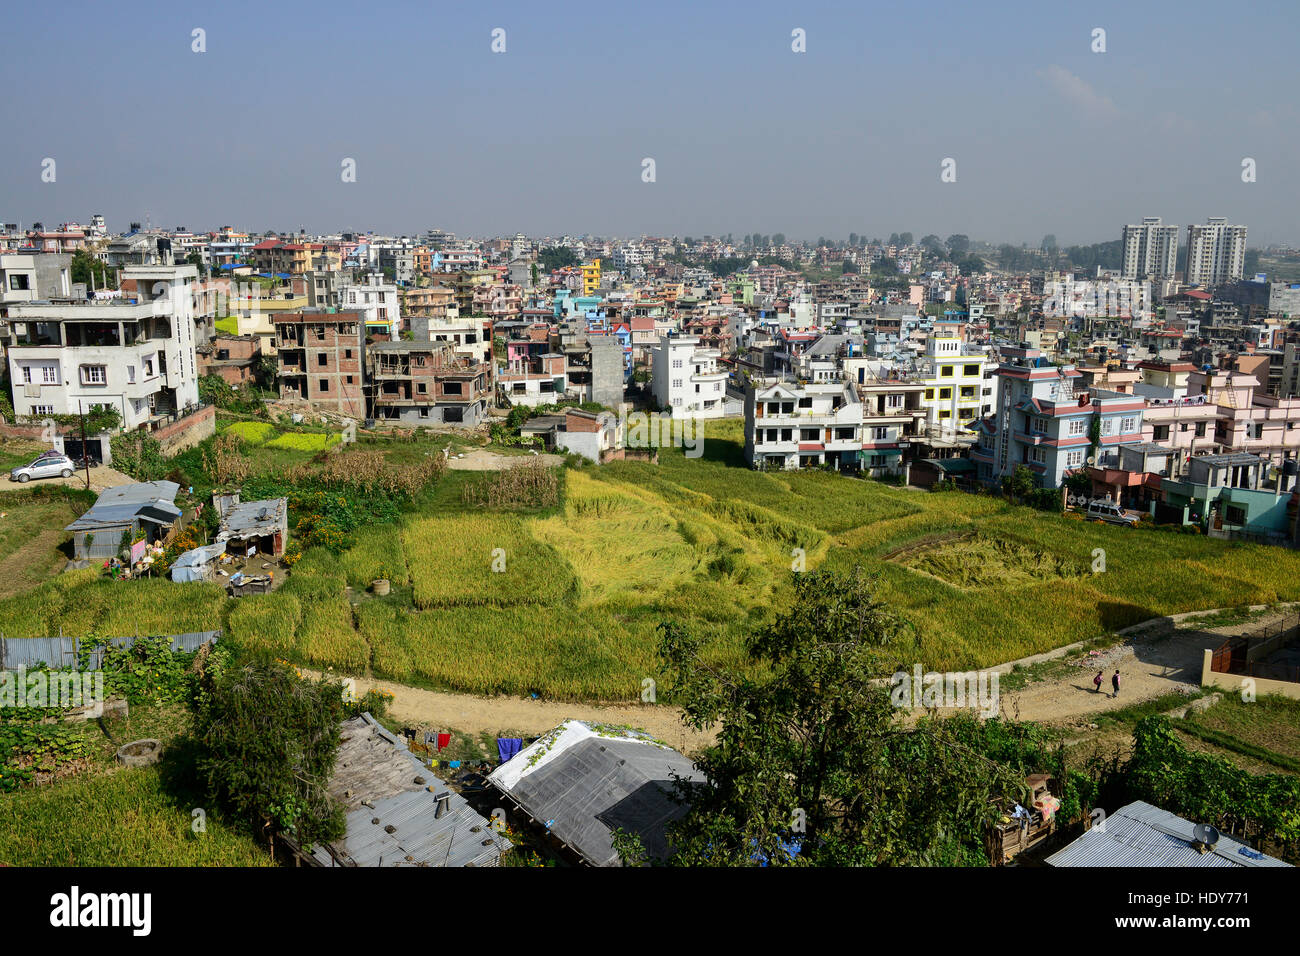 NEPAL Kathmandu, city growth, loss of agricultural fields, a remaining tin-shed hut and paddy fields / Staedtewachstum, - Stock Image